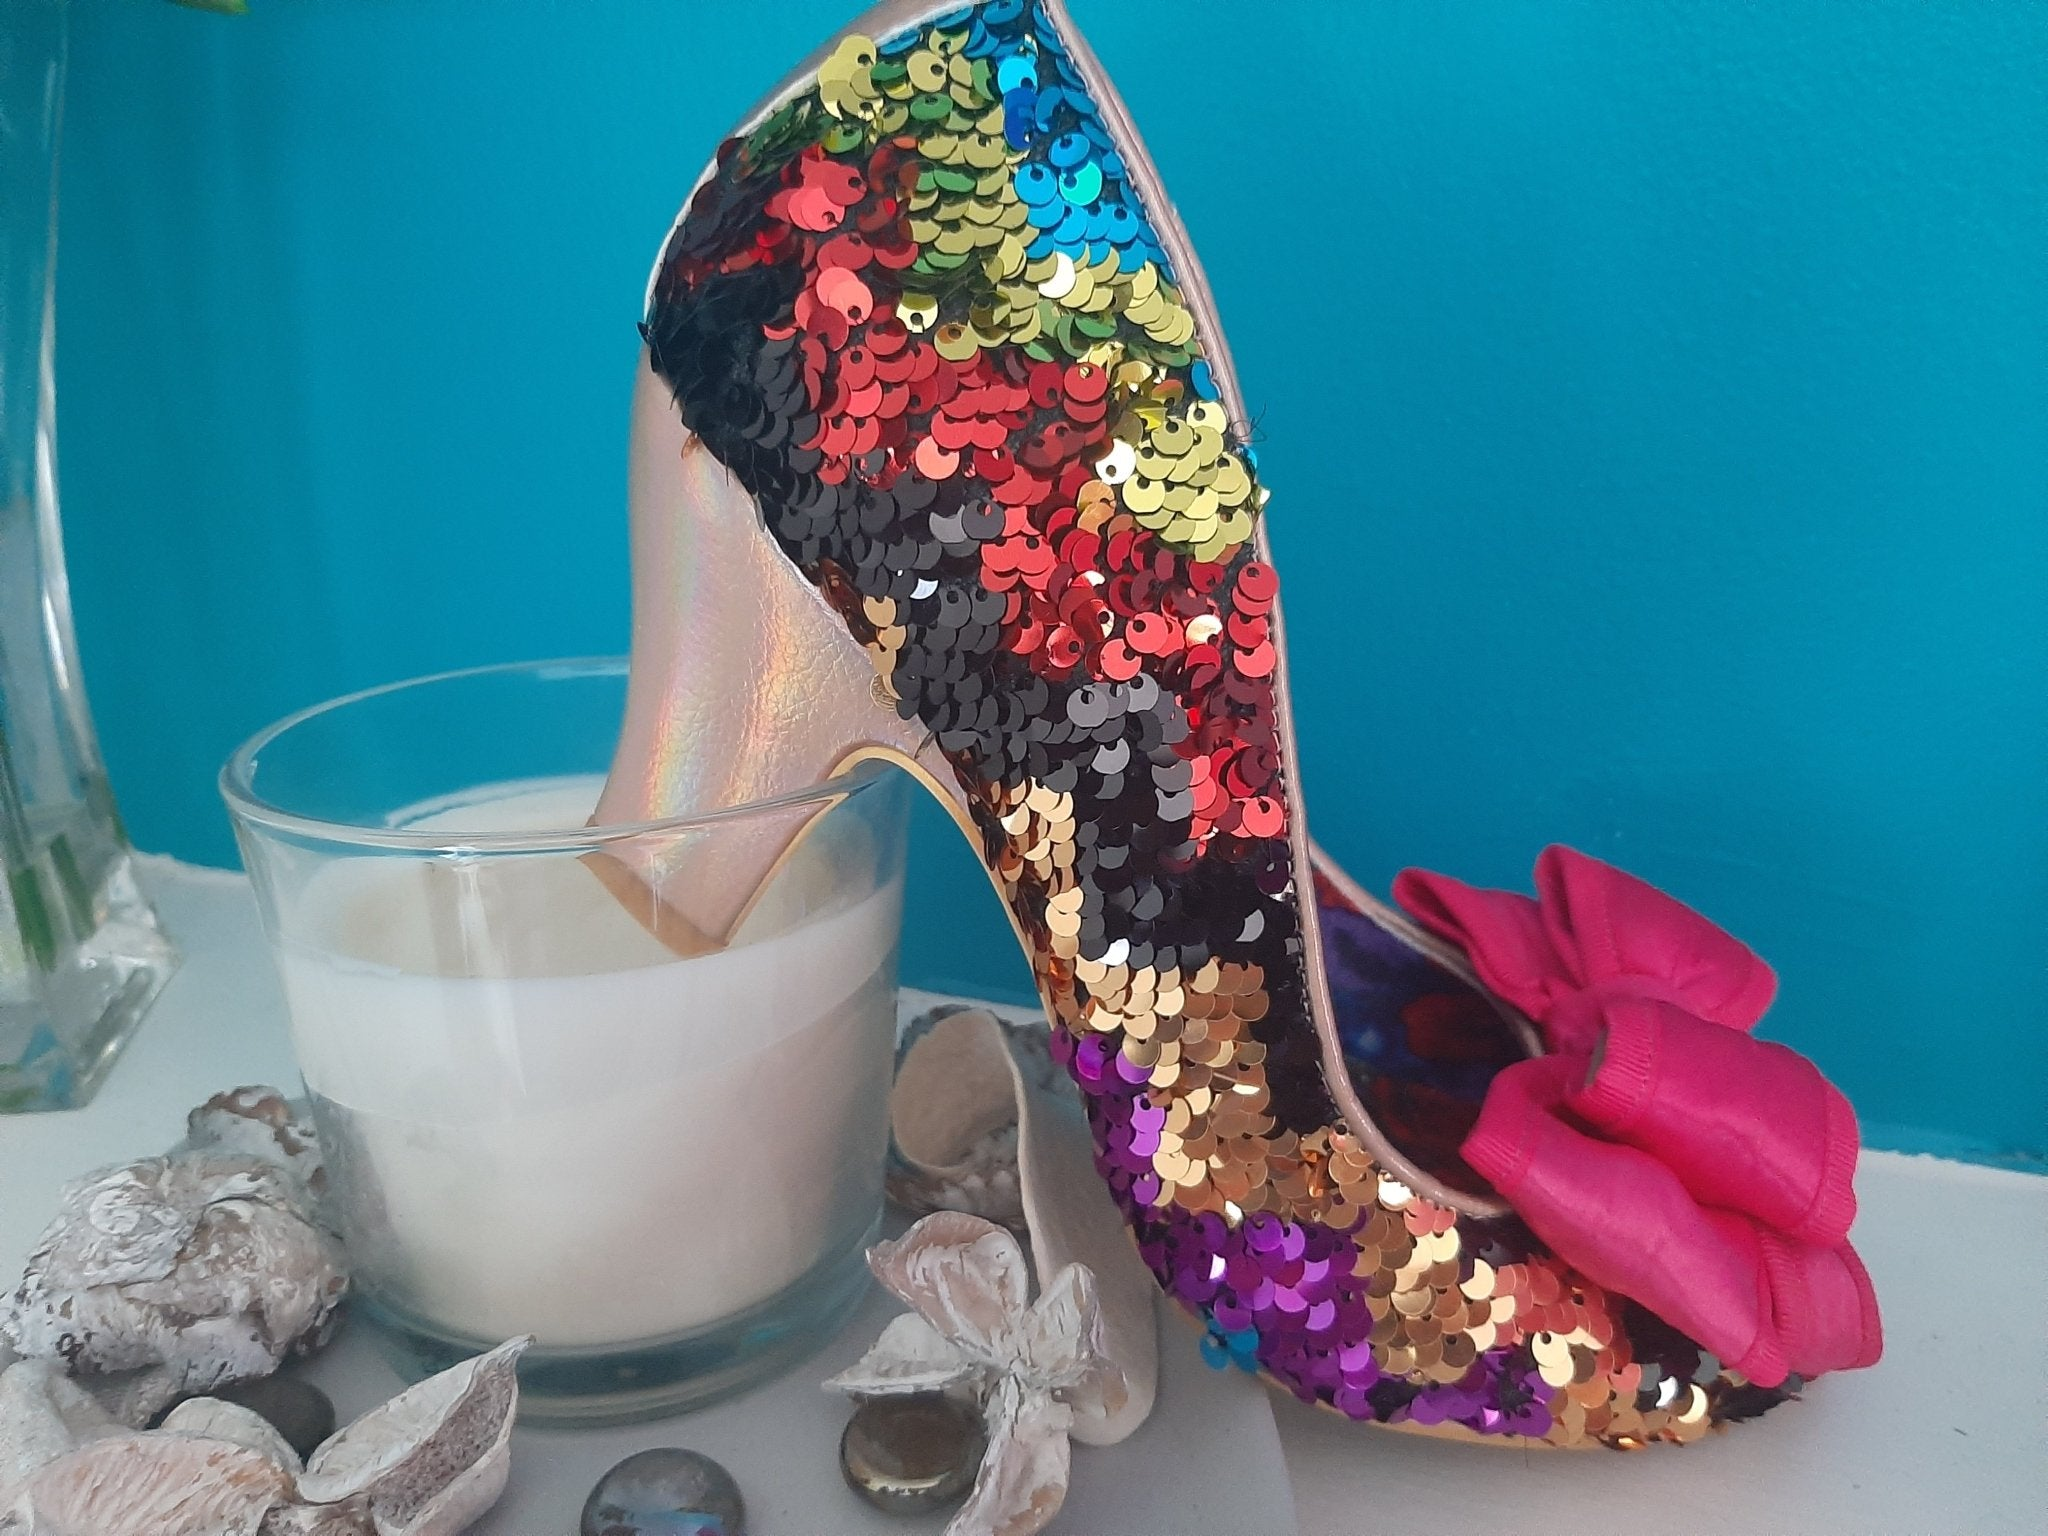 Lady Ban Joe Pink Glo Irregular Choice - Rockamilly-Shoes-Vintage